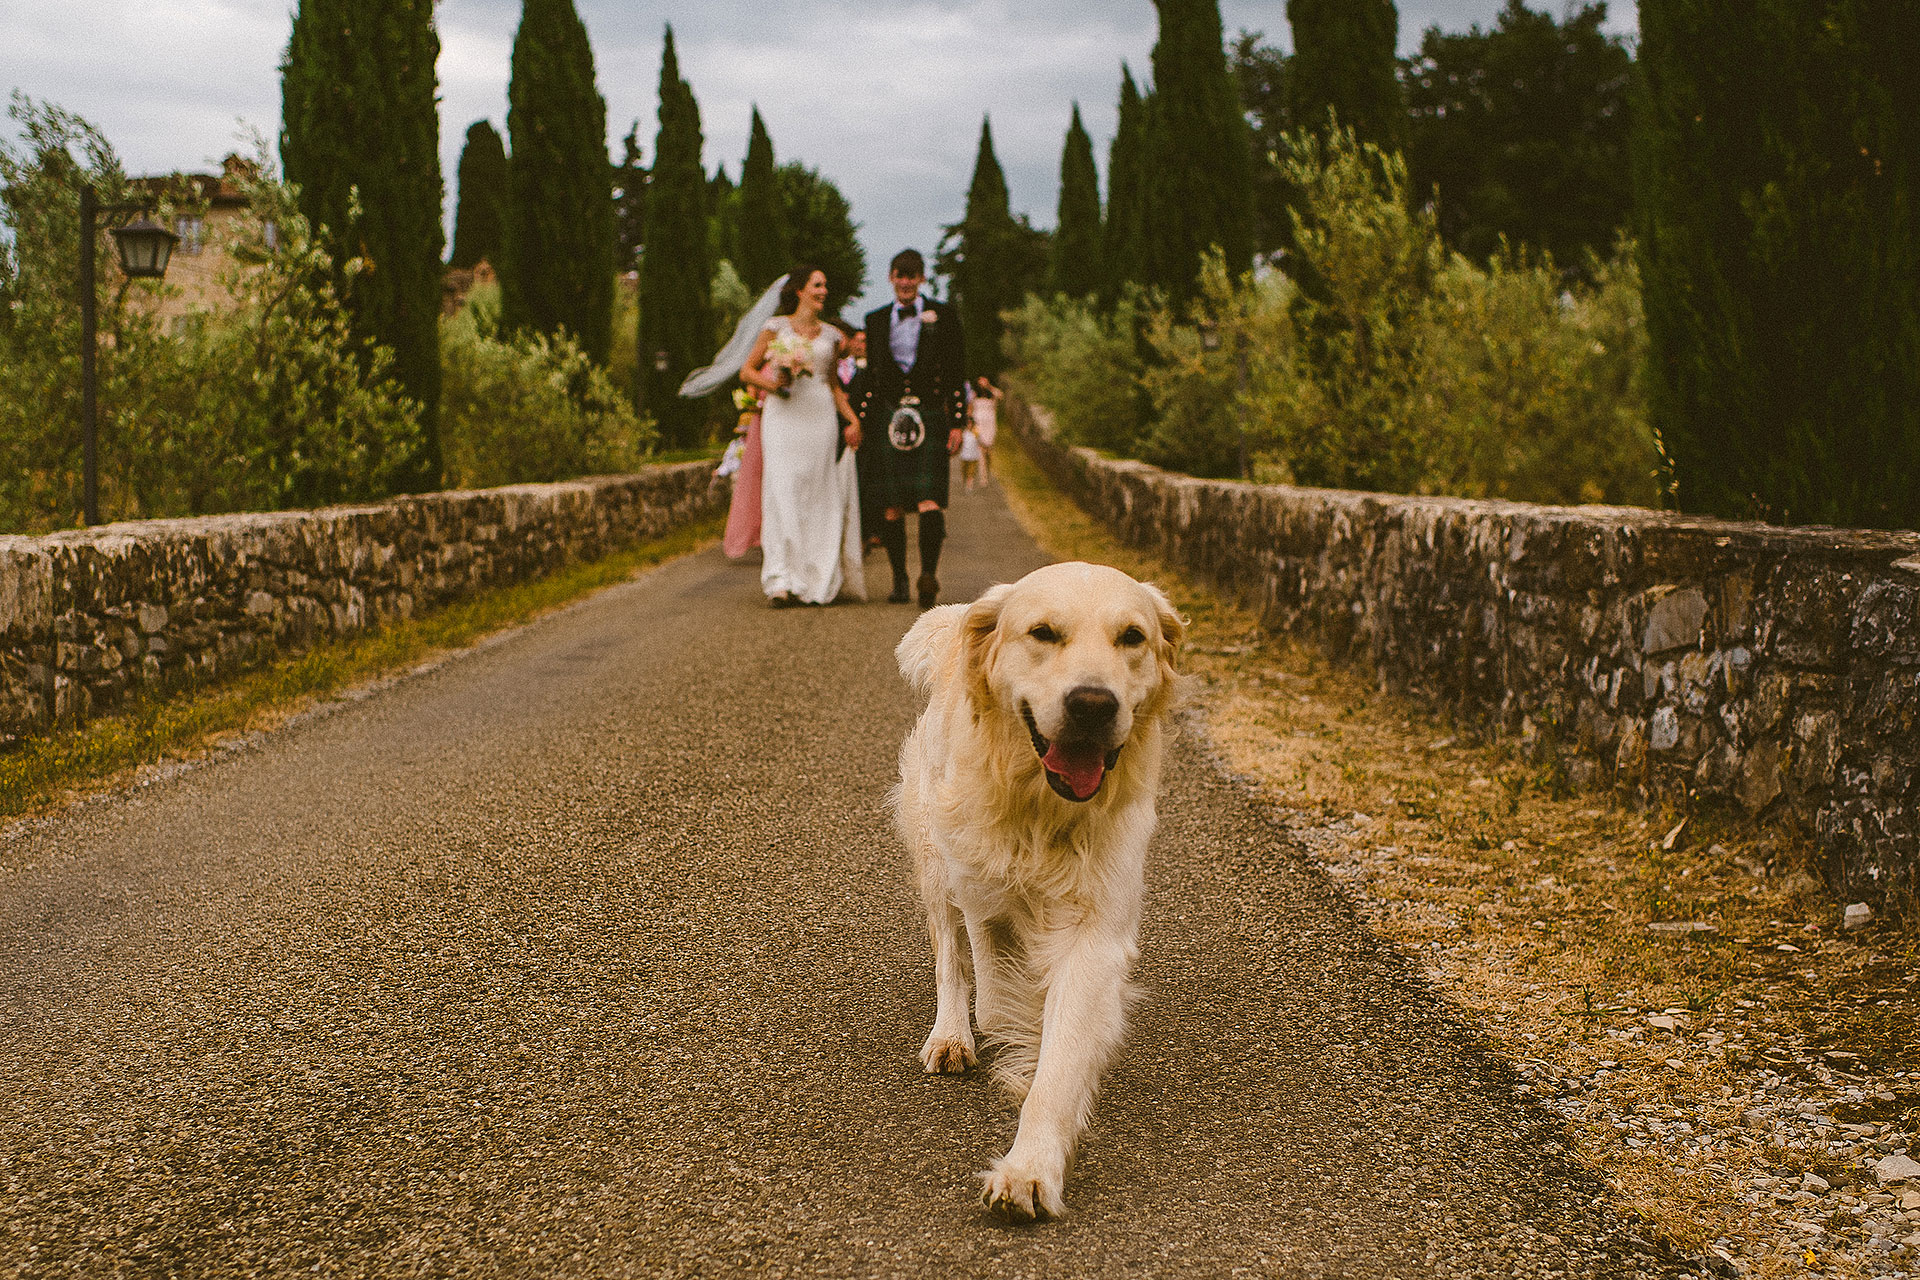 wedding castello meleto toscana